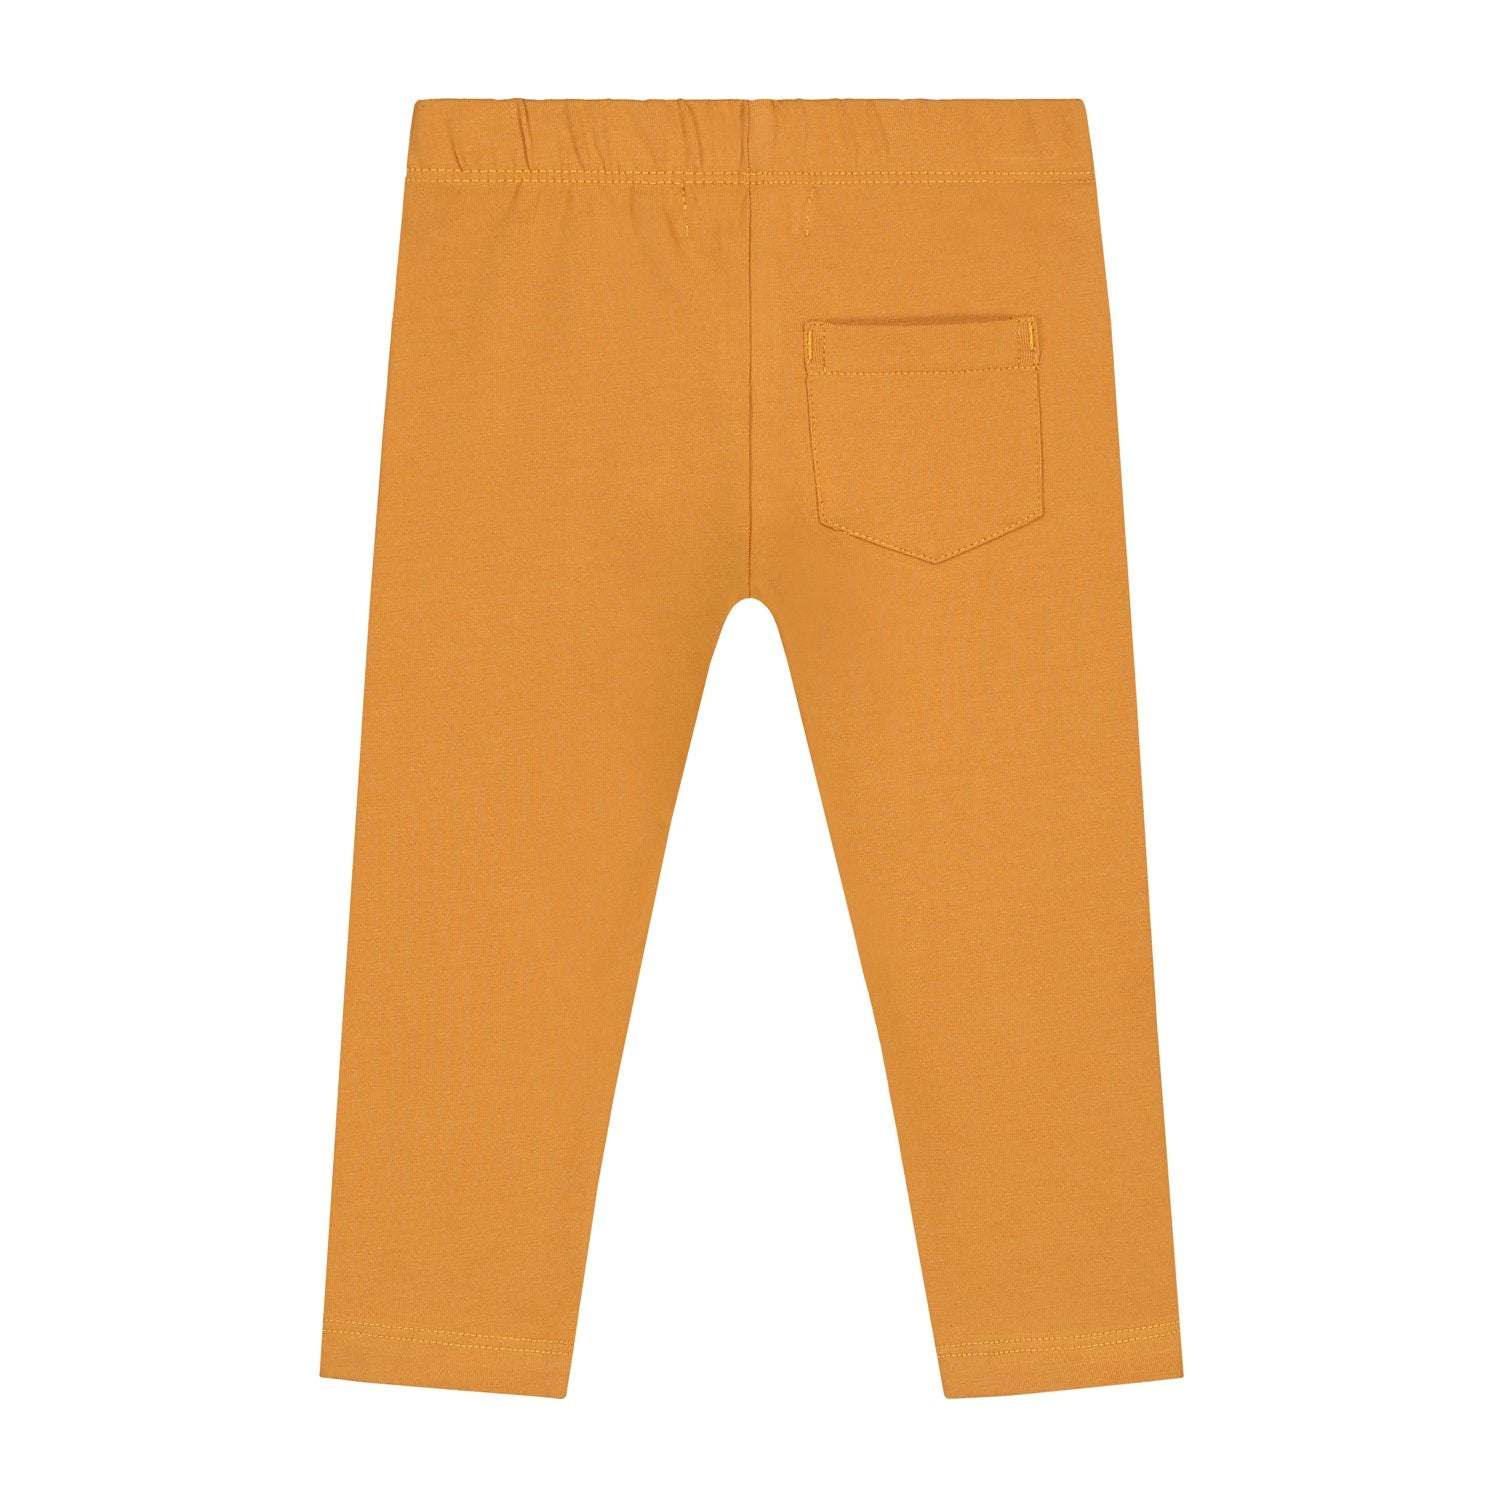 Smitten Organic Essentials - Pants Golden Glow Color - Back